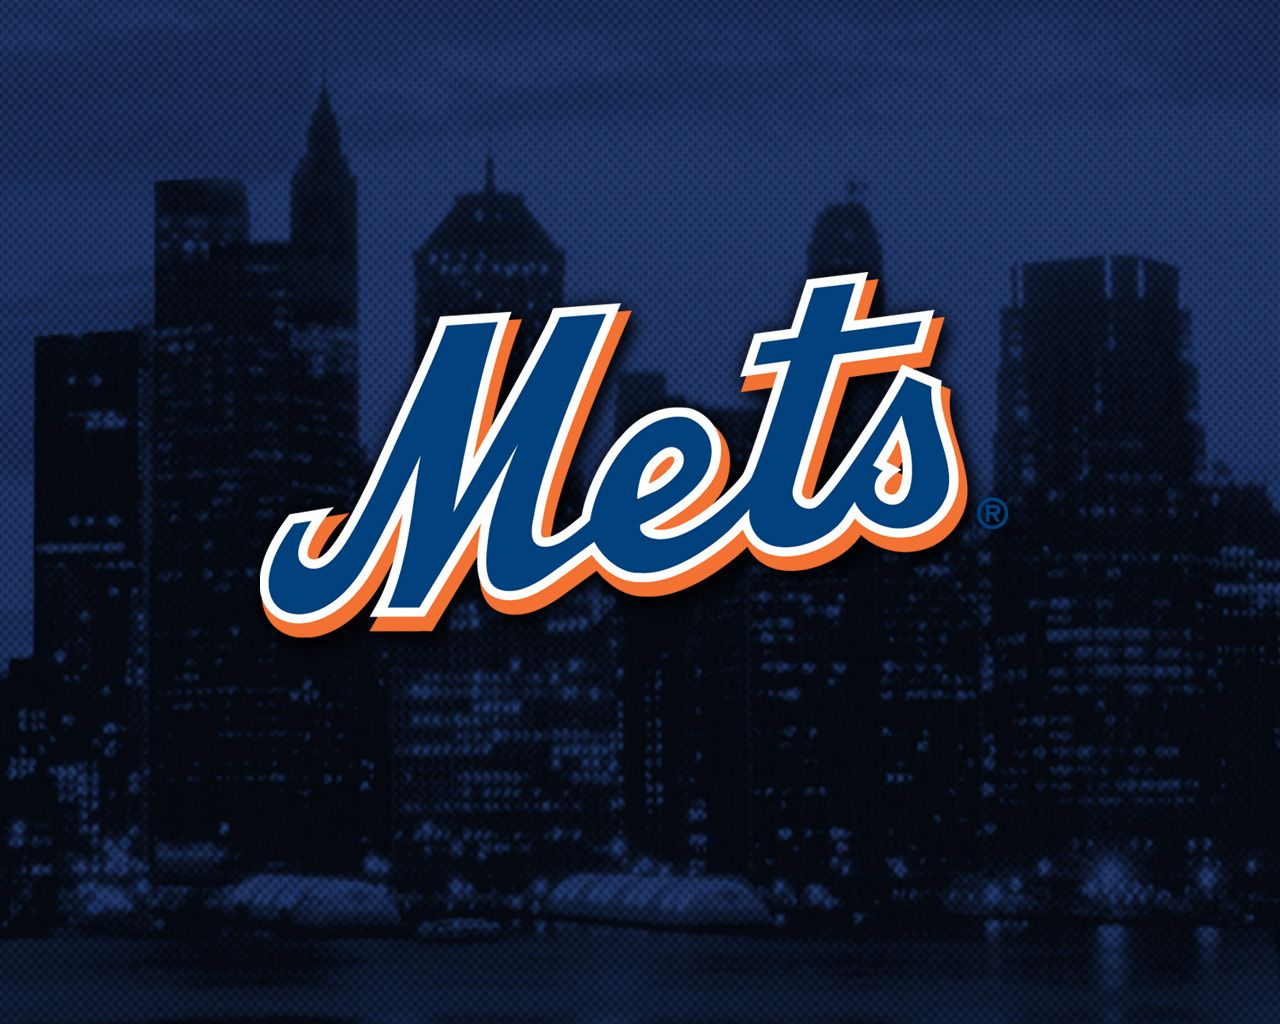 New York Mets Desktop Wallpapers (40 Wallpapers) - Adorable Wallpapers